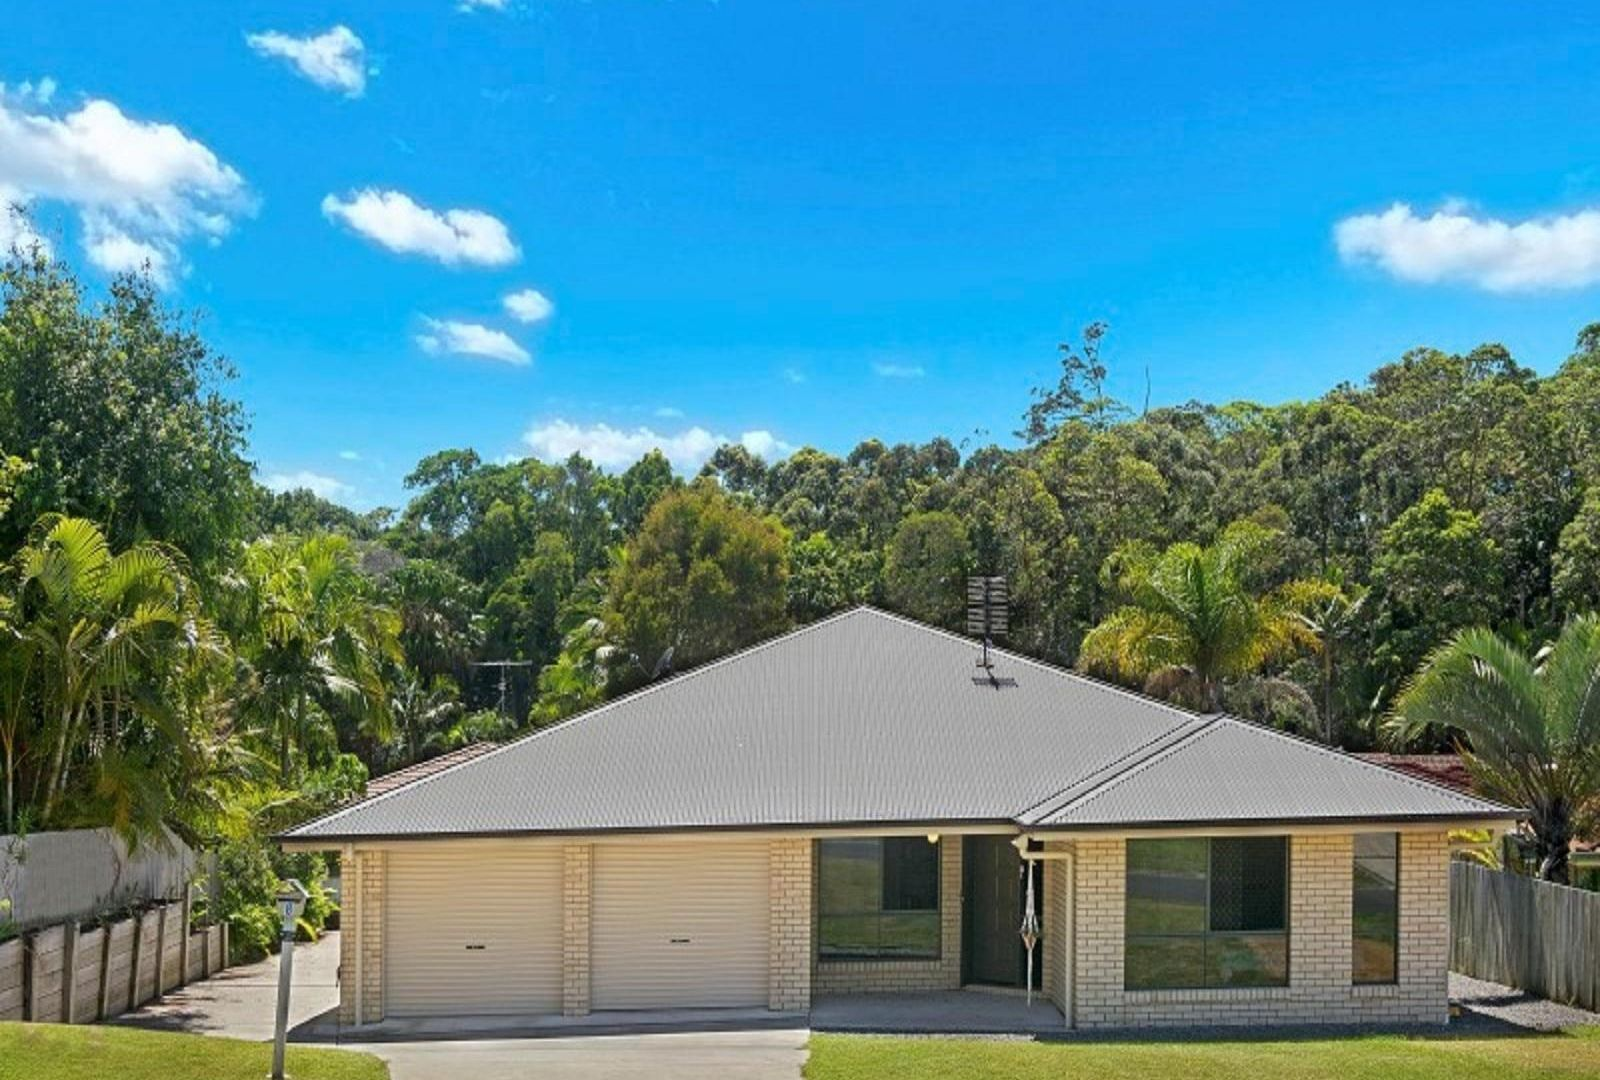 8 Allamanda Avenue, Little Mountain QLD 4551, Image 1